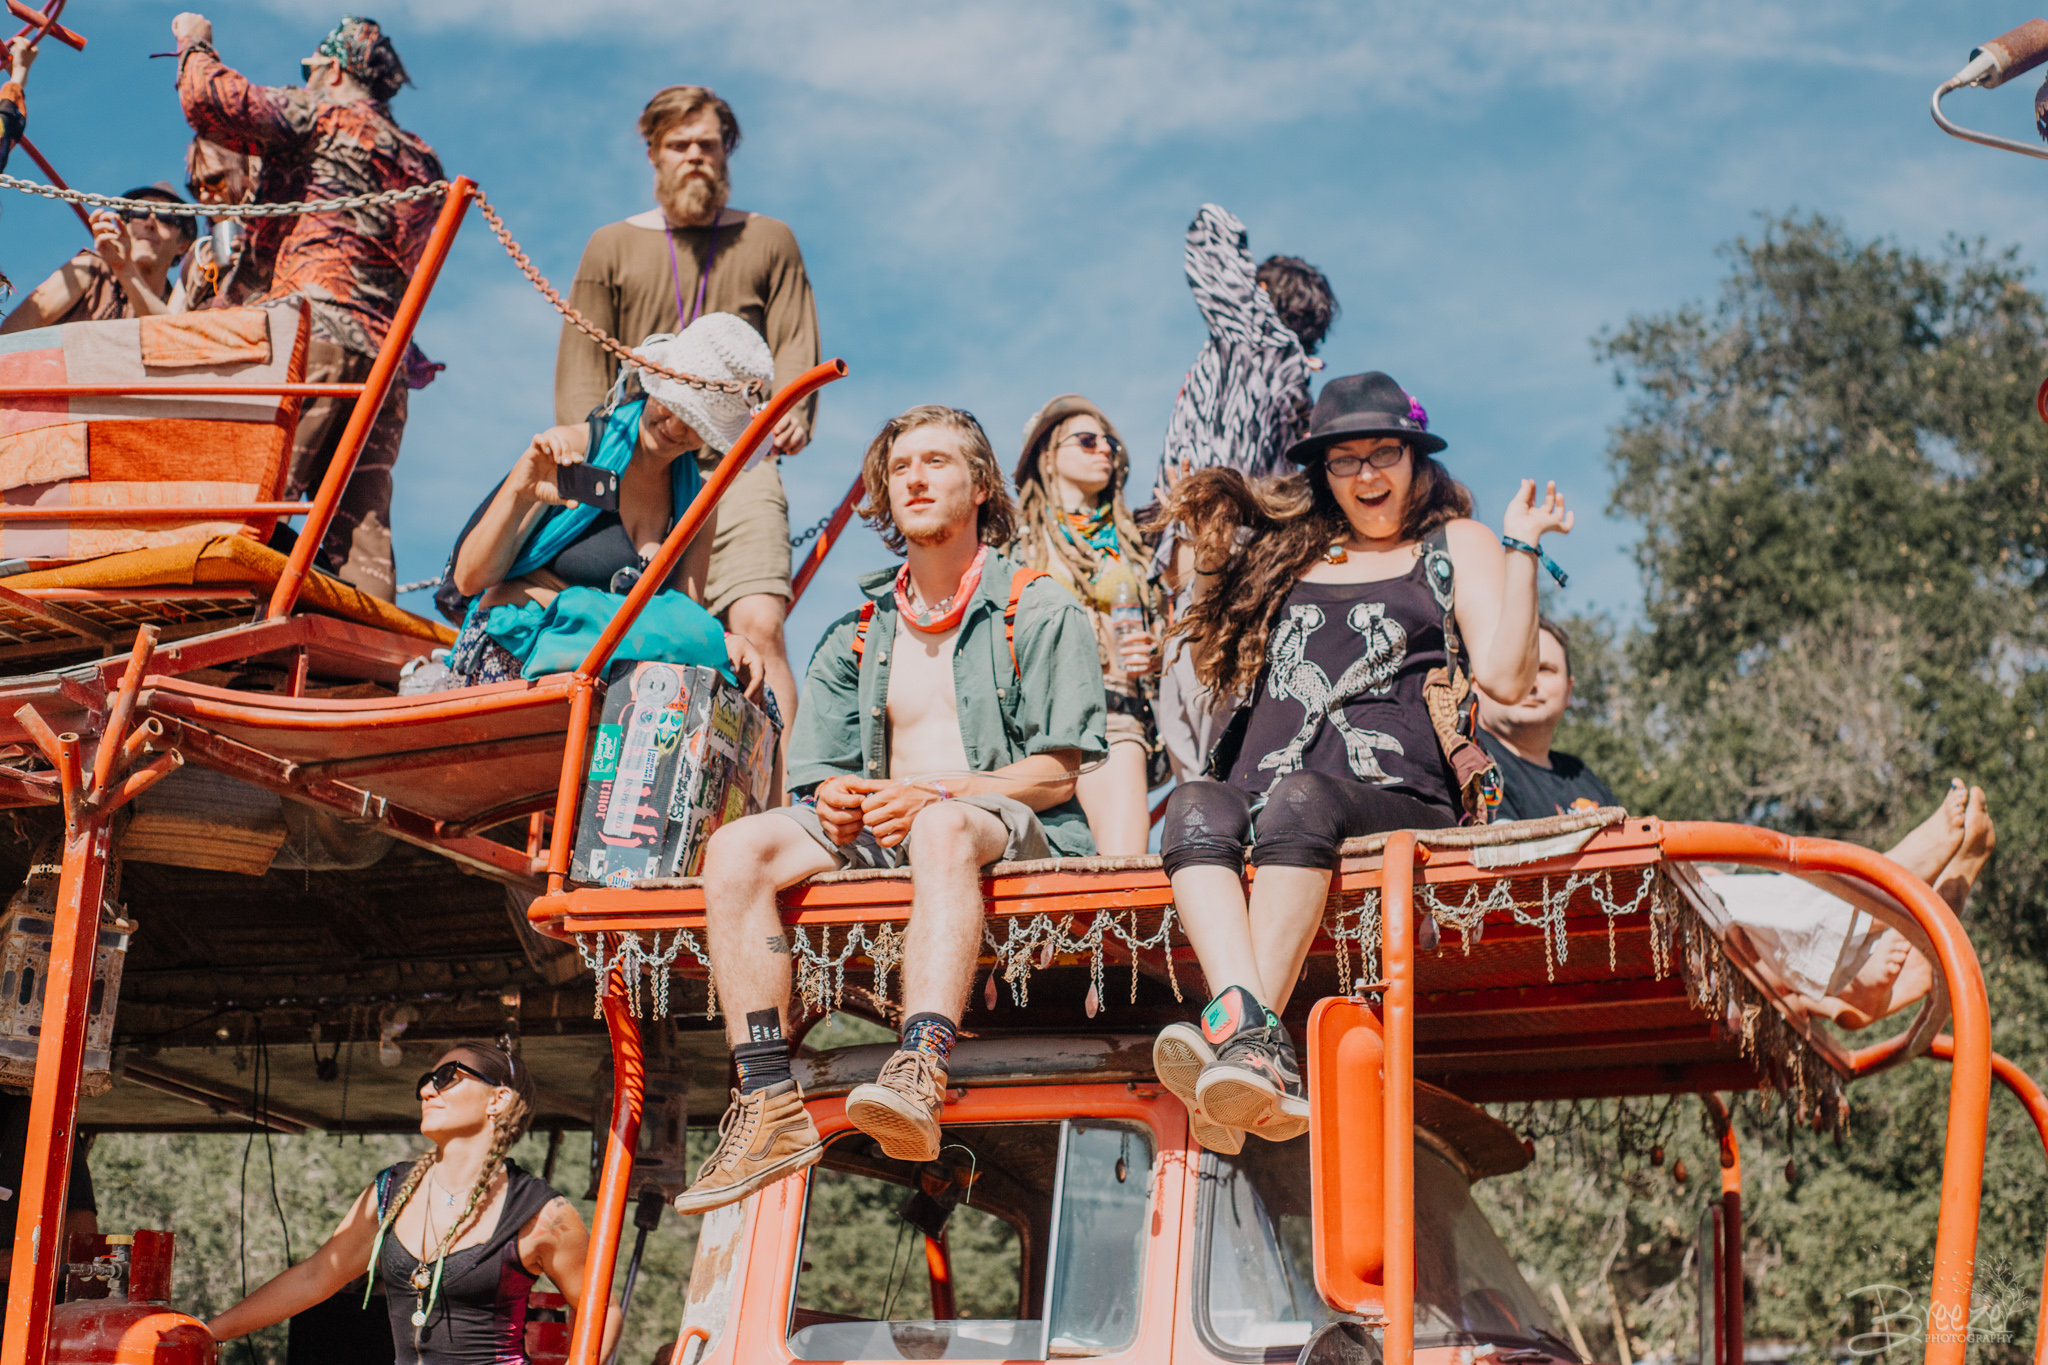 Lucidity.Festival.2019.Brie'Ana Breeze Photography and Media-7289.jpg